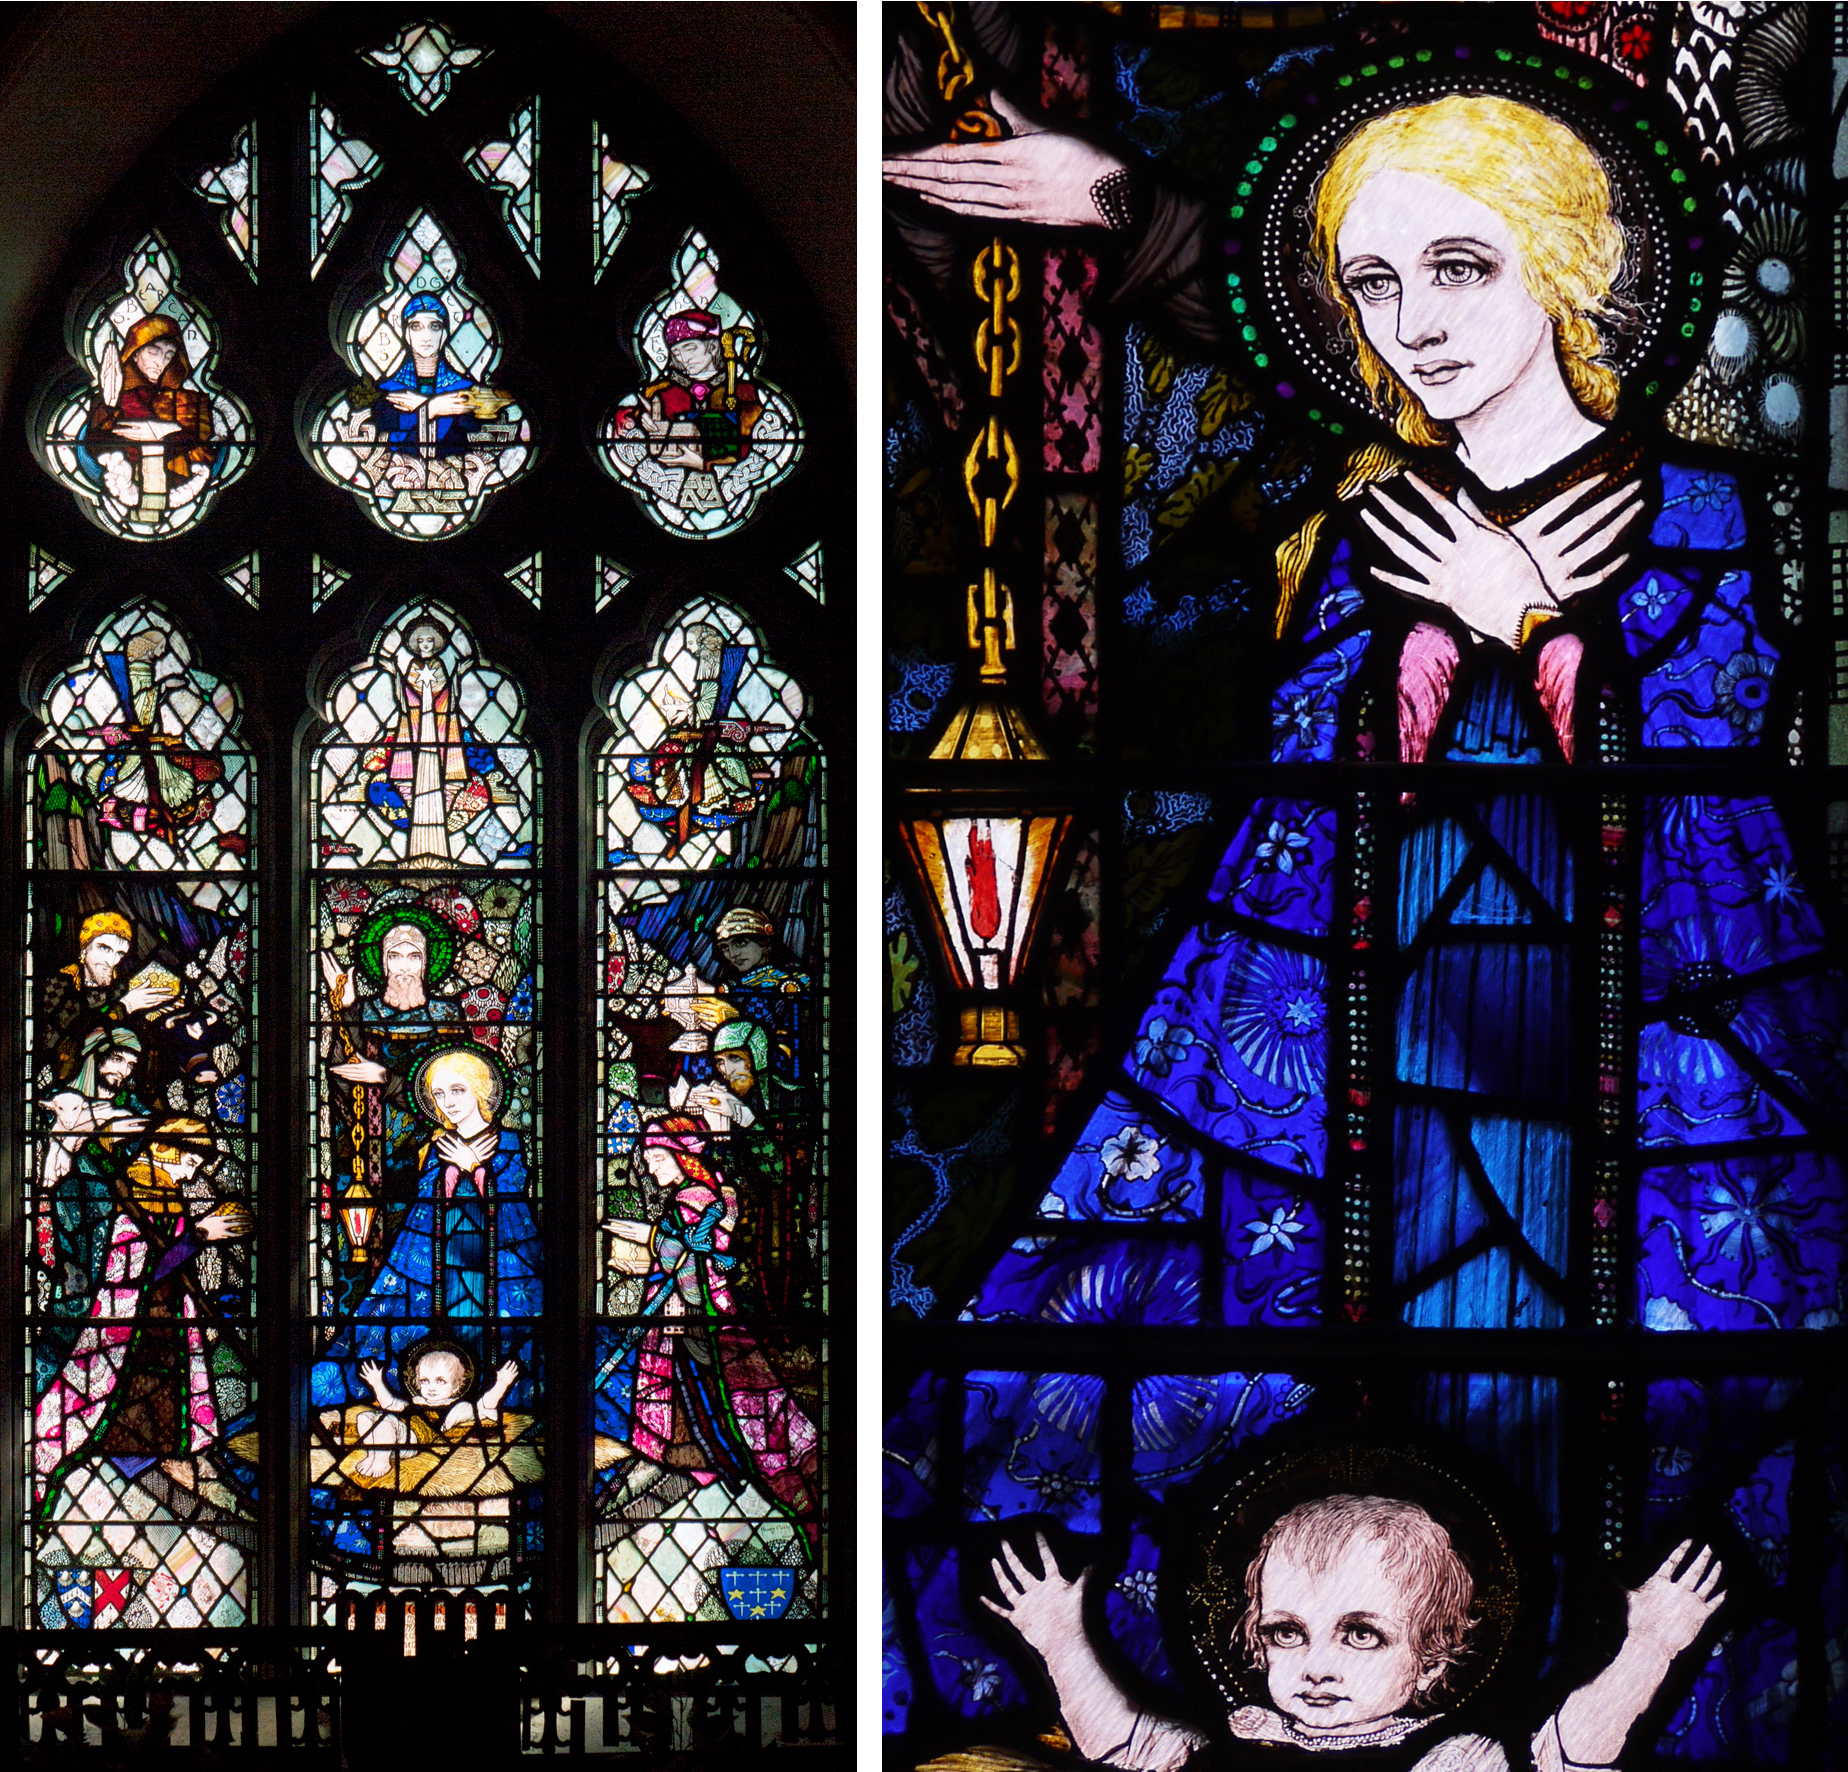 St. Barrahane's Church of Ireland, Castletownsend 1918 - Nativity window and detail of Madonna and child